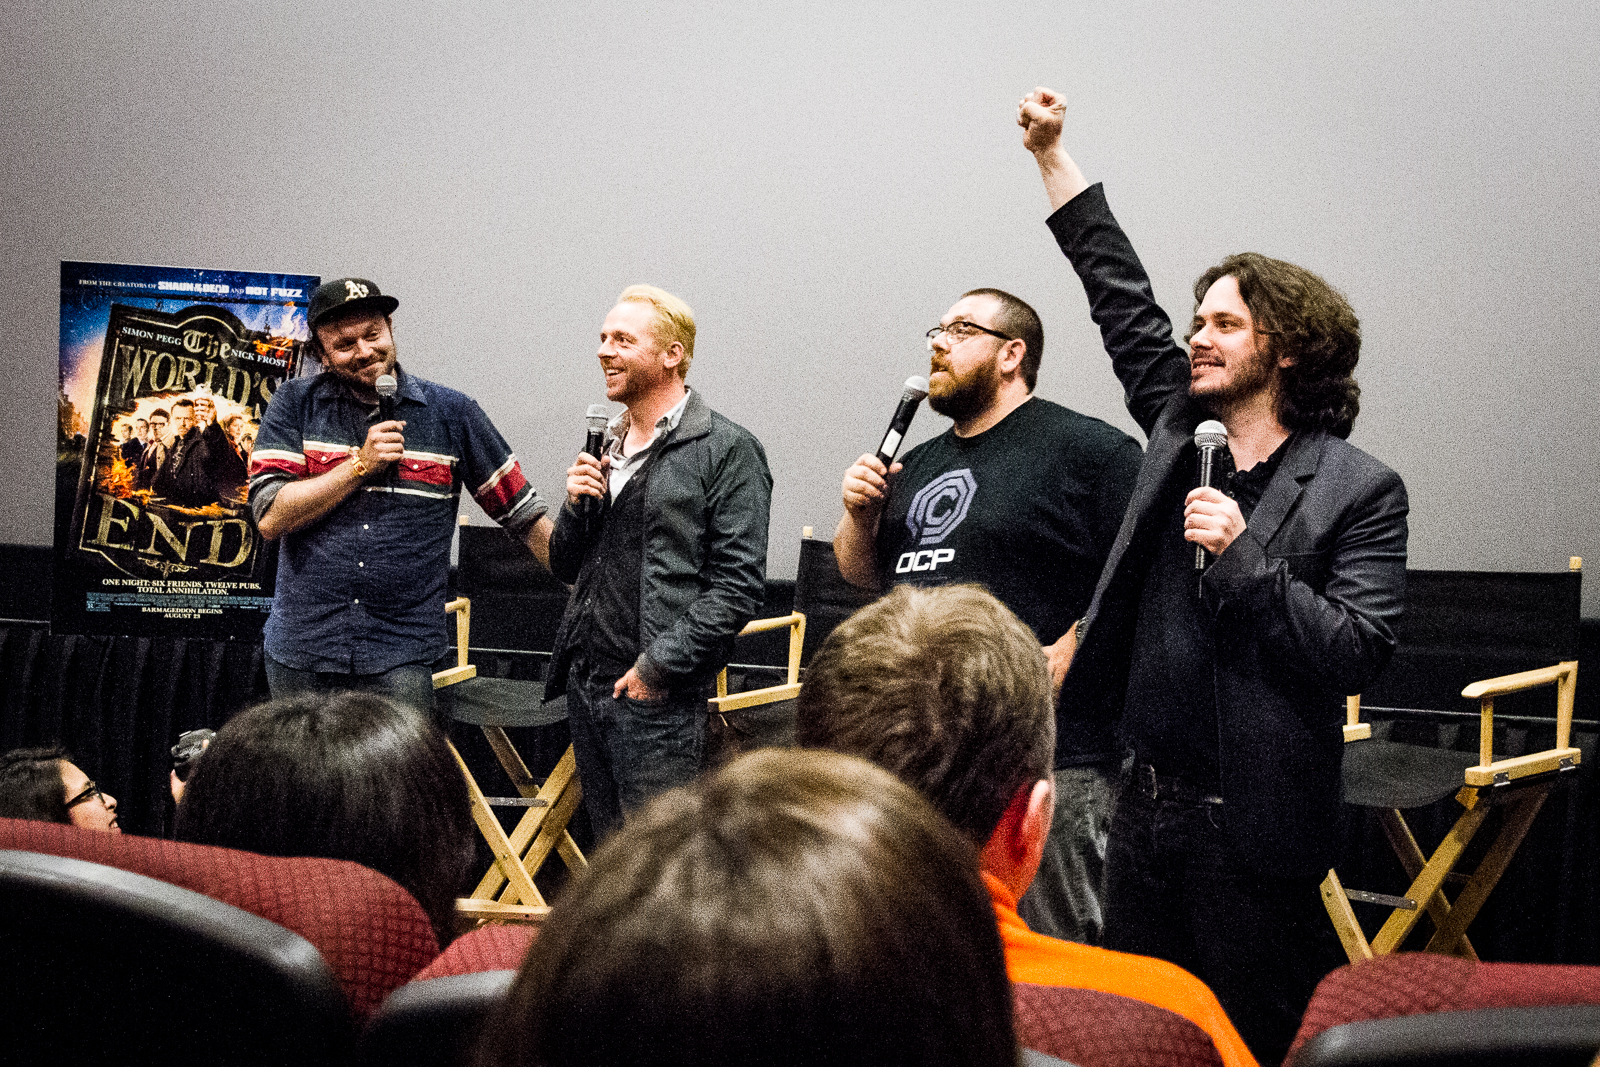 Simon Pegg, Nick Frost, and Edgar Wright Invaded San Francisco